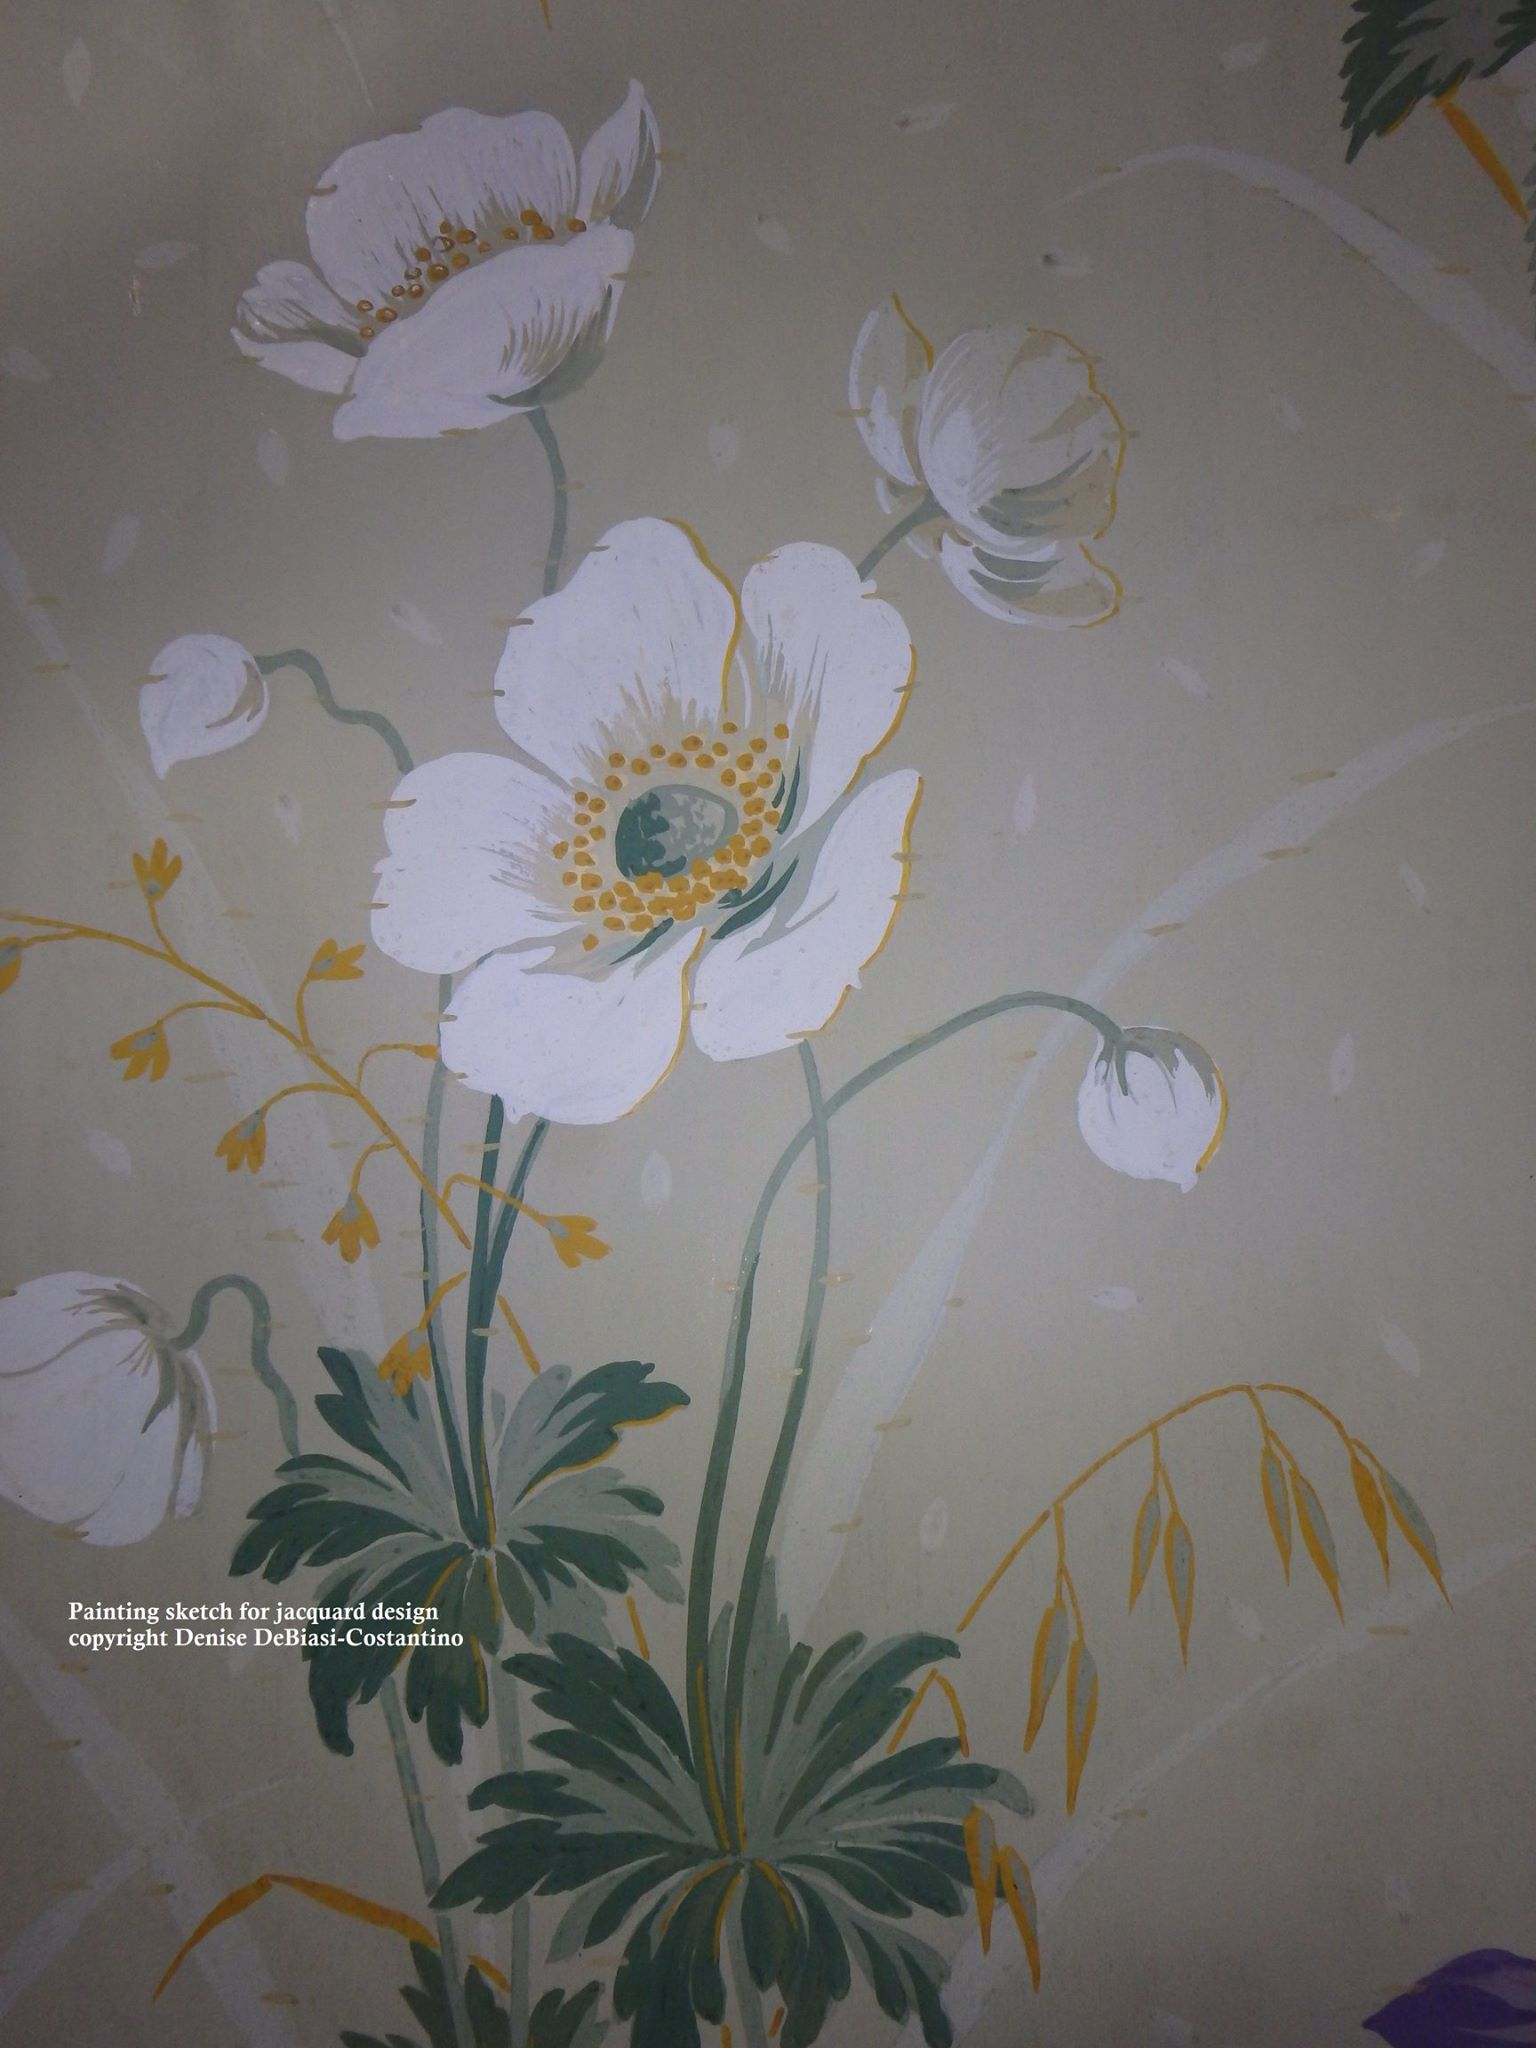 floral designs jacquard and prints surface designs